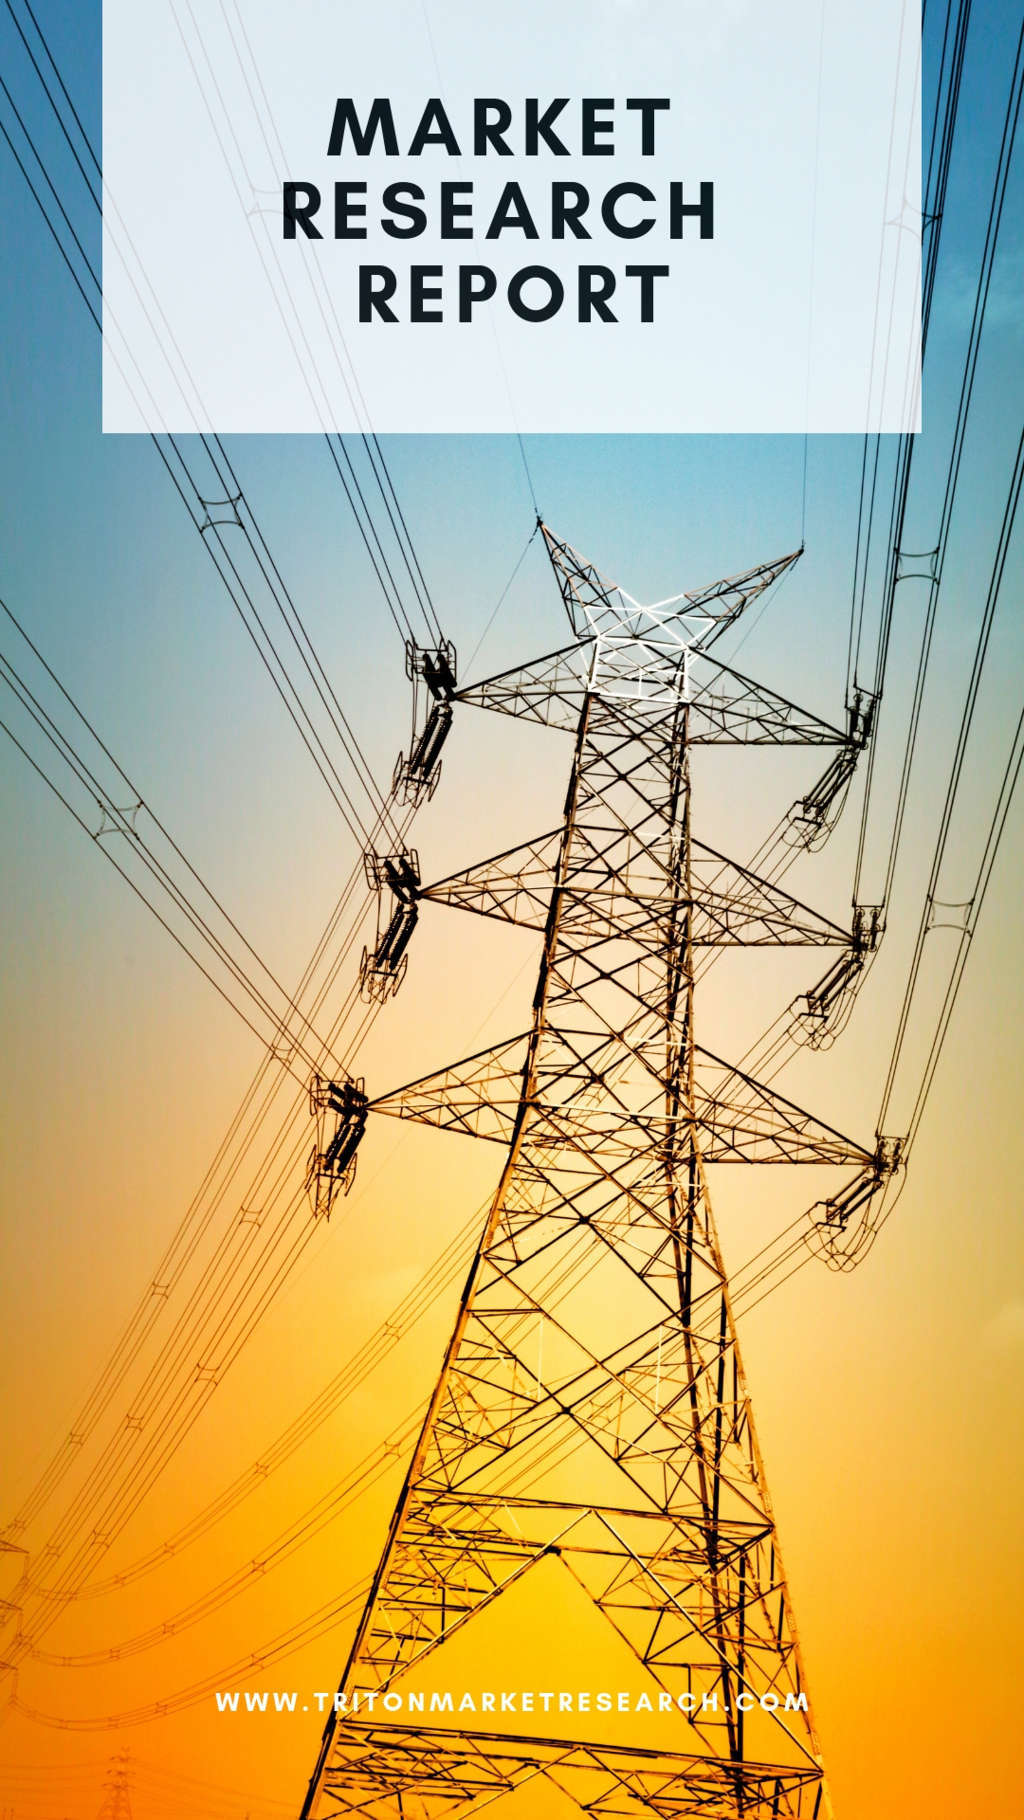 ASIA-PACIFIC UTILITY AND ENERGY ANALYTICS MARKET 2019-2027